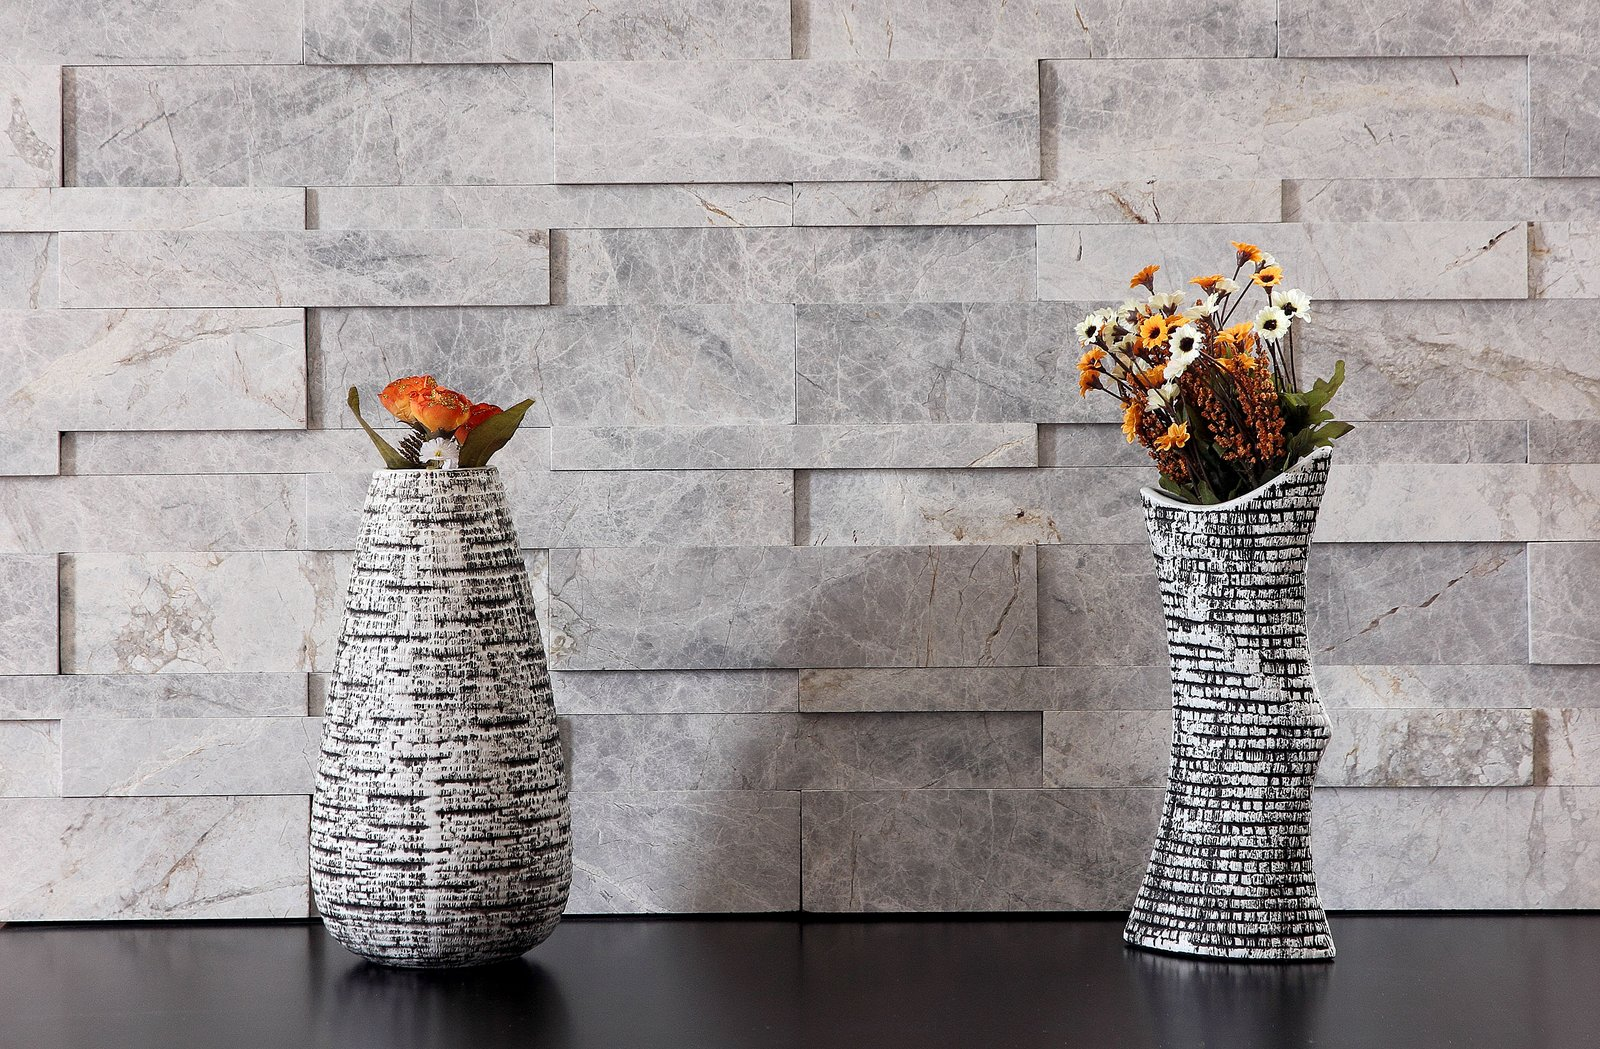 Stone marble granite exterior wall cladding view cladding wall - Gallery Of Valensa Grey Marble D Espace Wall Cladding With Marble Wall Cladding Designs